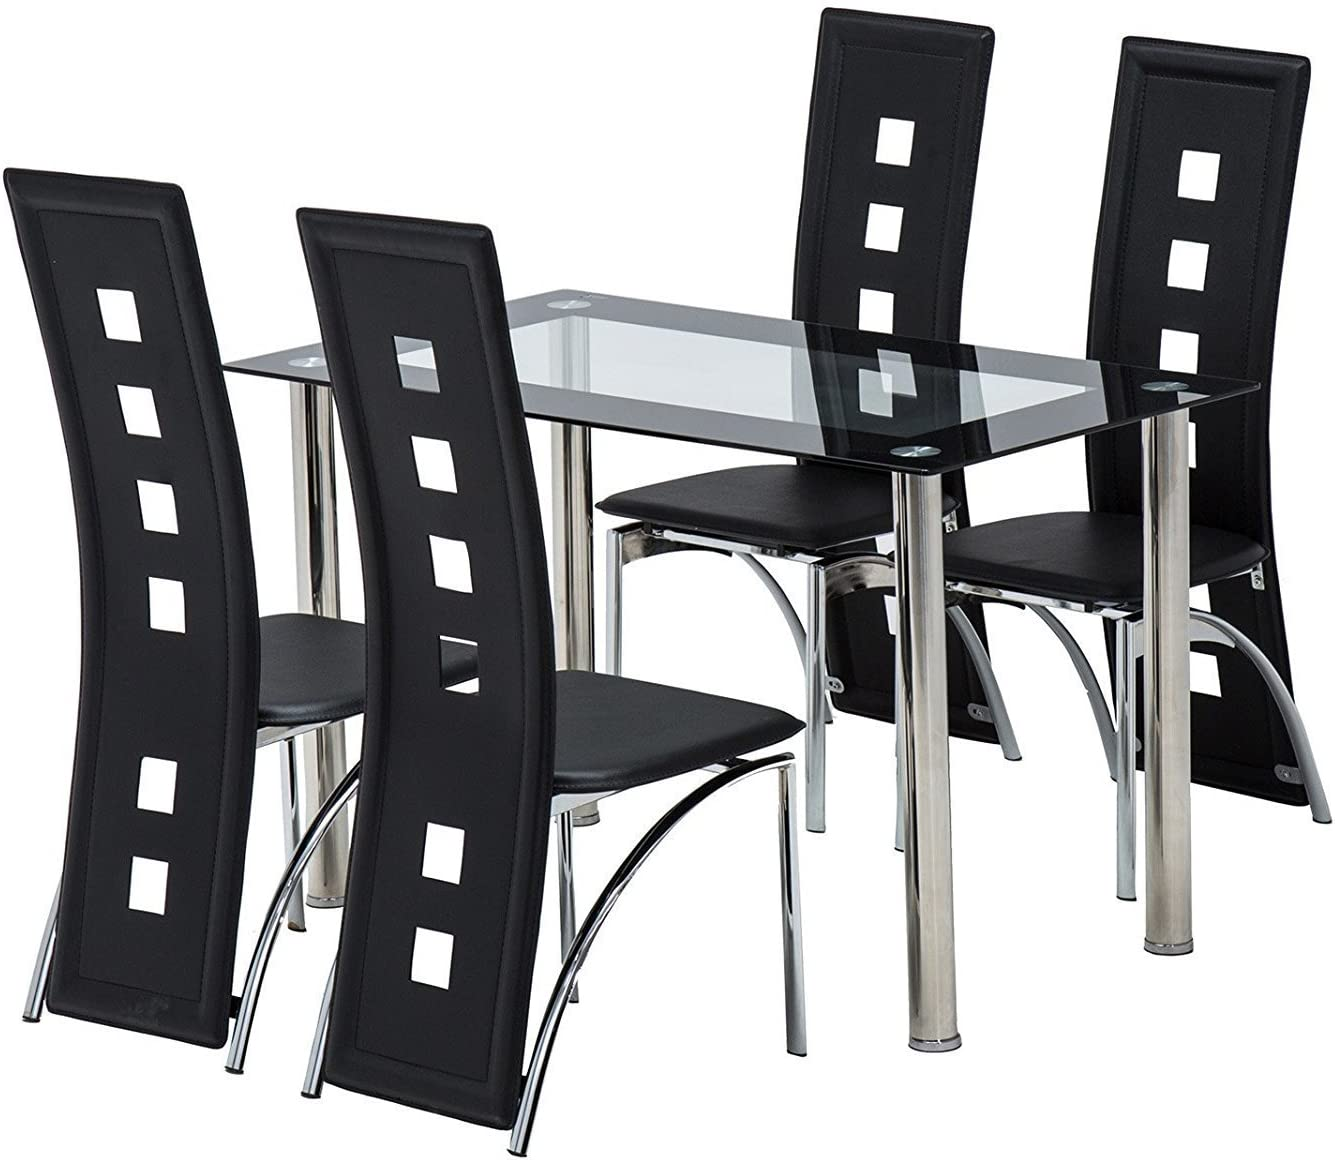 5 Piece Dining Table Set Glass Top Table and 4 Dining Chairs Kitchen Room Breakfast Furniture Black Dining Table Set